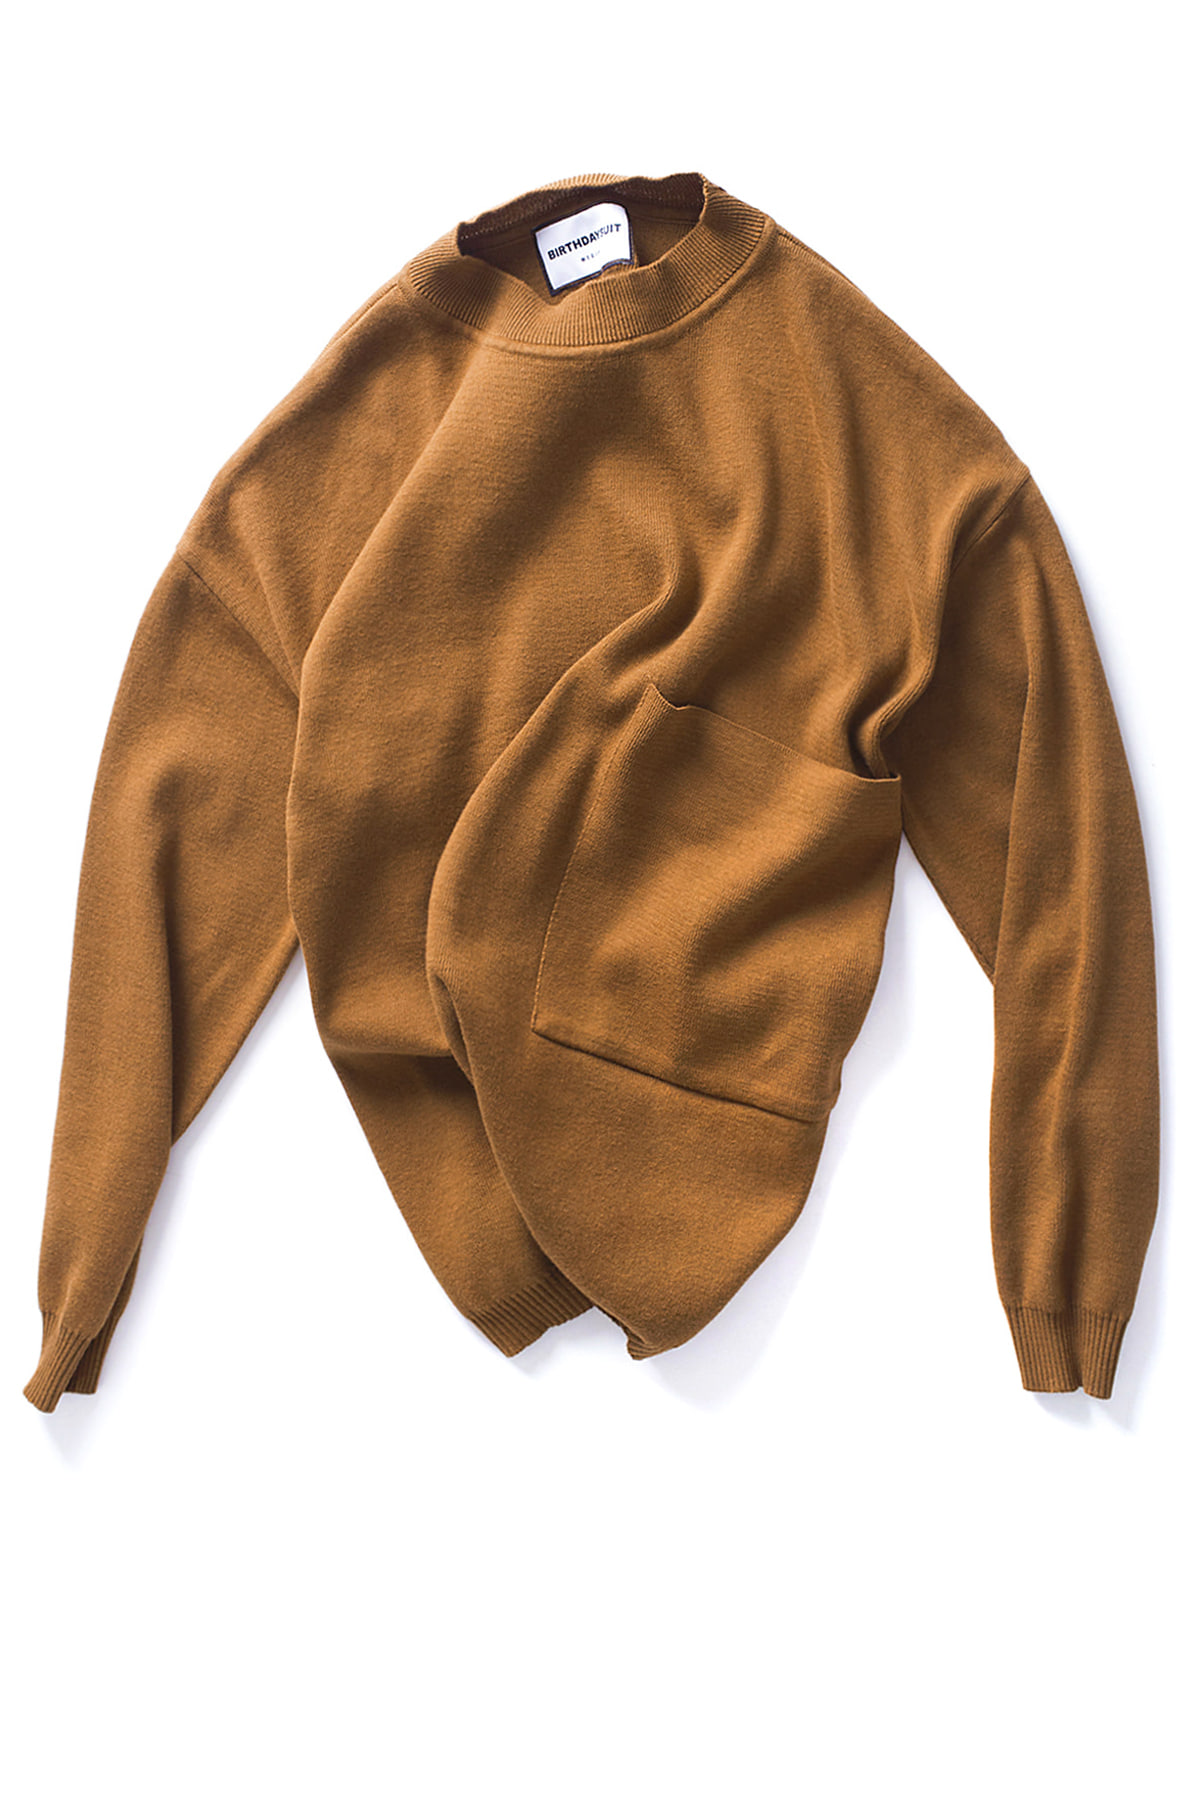 BIRTHDAYSUIT : Big Pocket Knit Pullover (Camel)